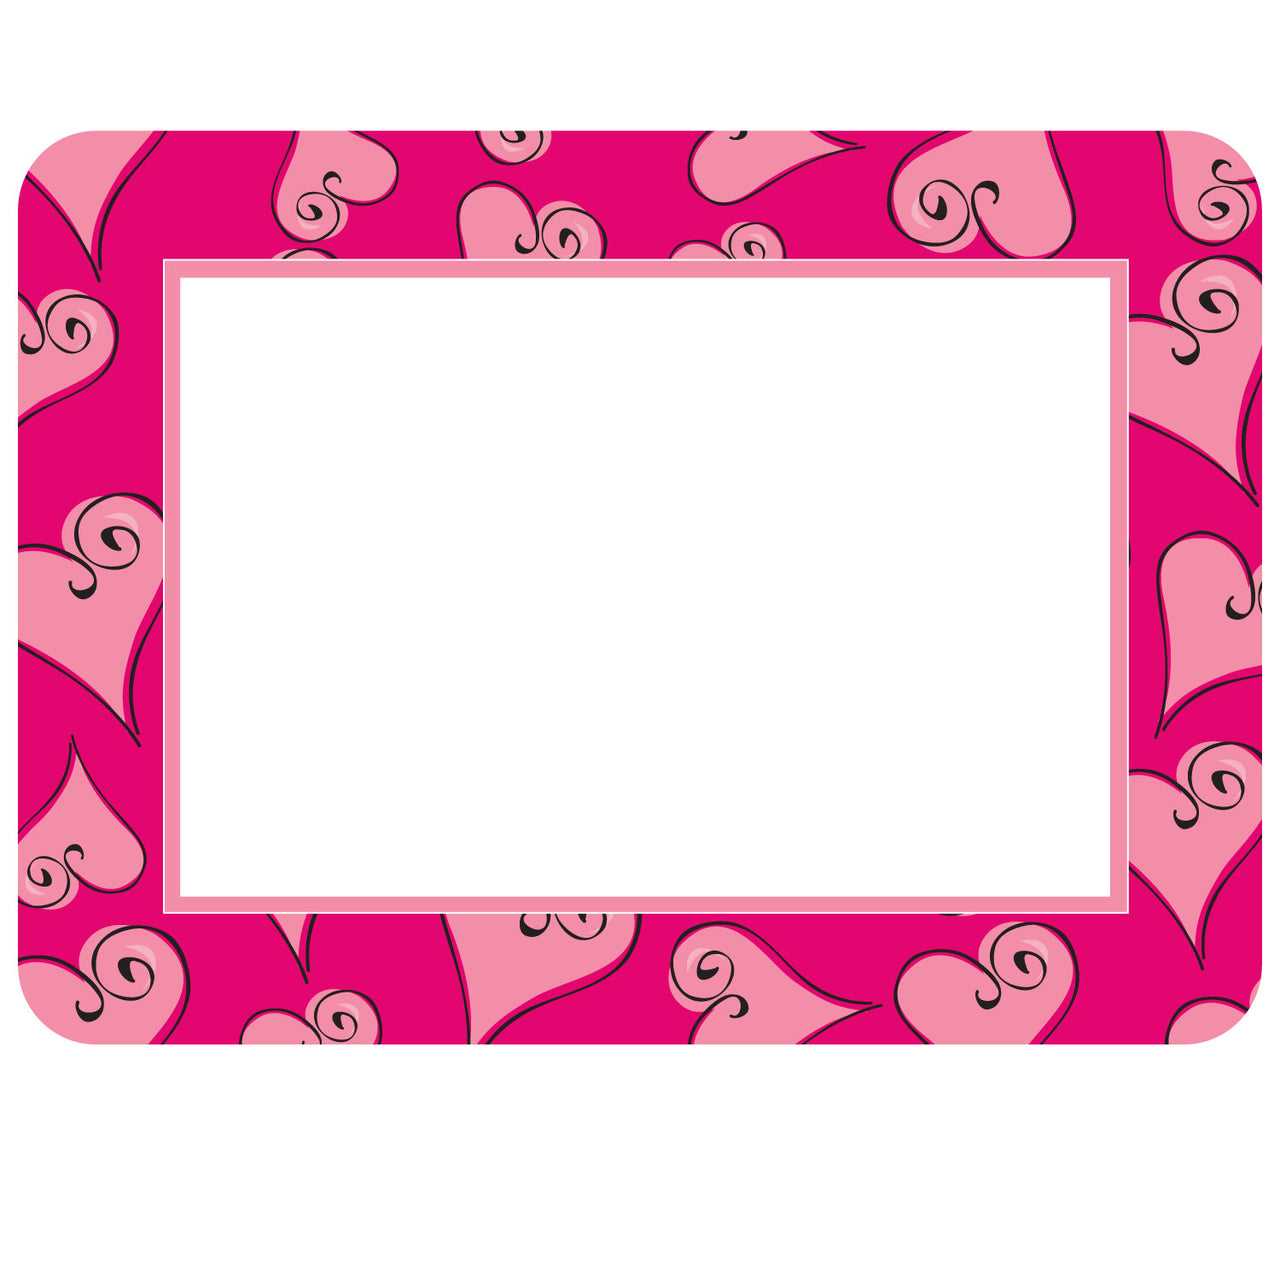 Valentine Hearts - Pink Self-Stick Picture Frames Collection